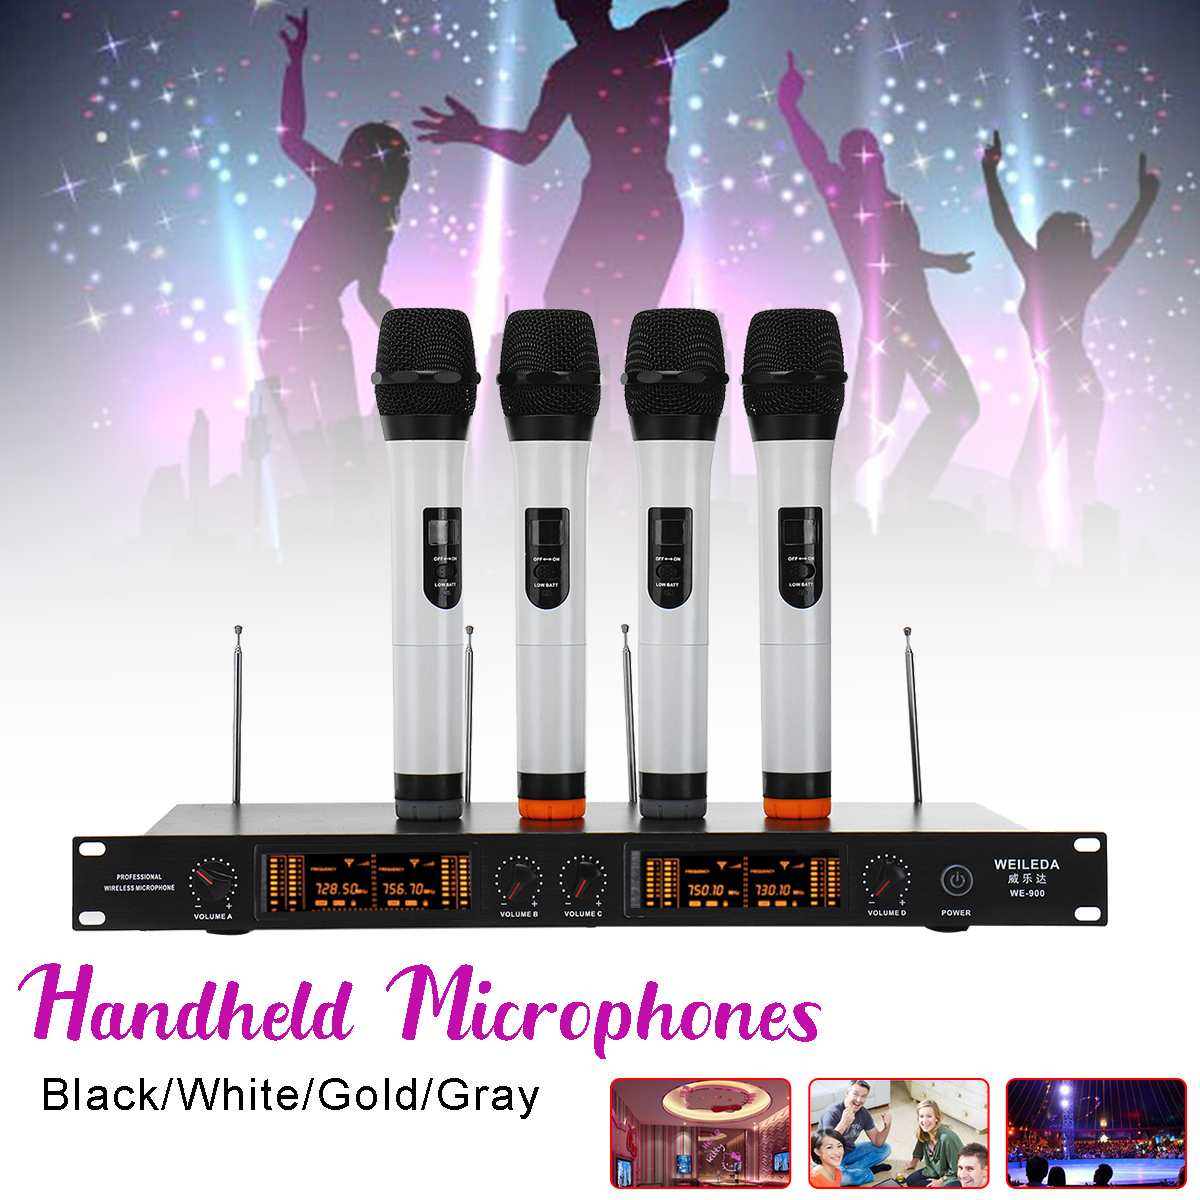 Wireless Microphone UHF 4 Channel Professional LCD Cordless System Headheld Mic 110-220V LED Display Sensitive for KTV StageWireless Microphone UHF 4 Channel Professional LCD Cordless System Headheld Mic 110-220V LED Display Sensitive for KTV Stage